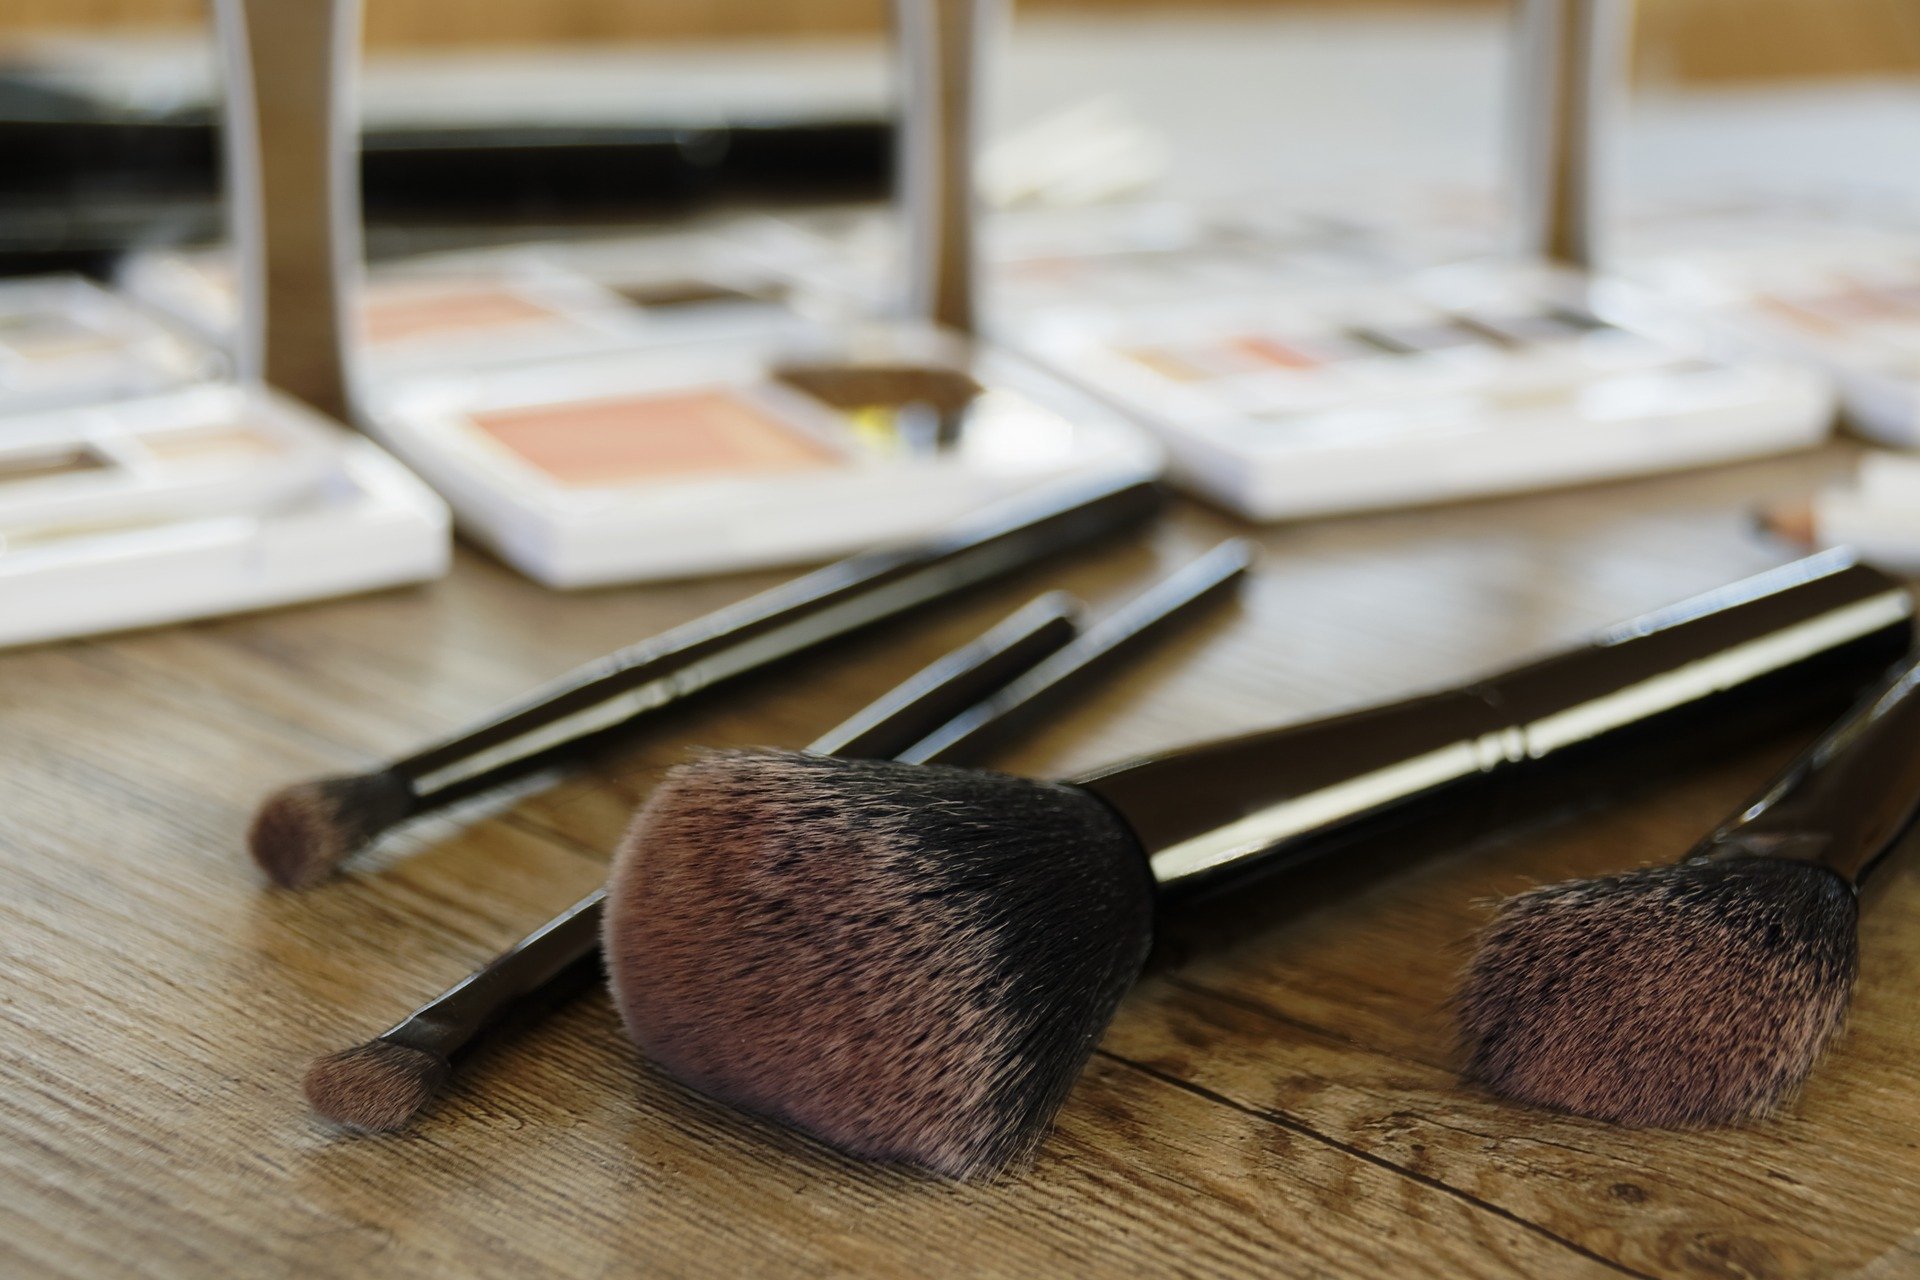 Cosmetics, stock image